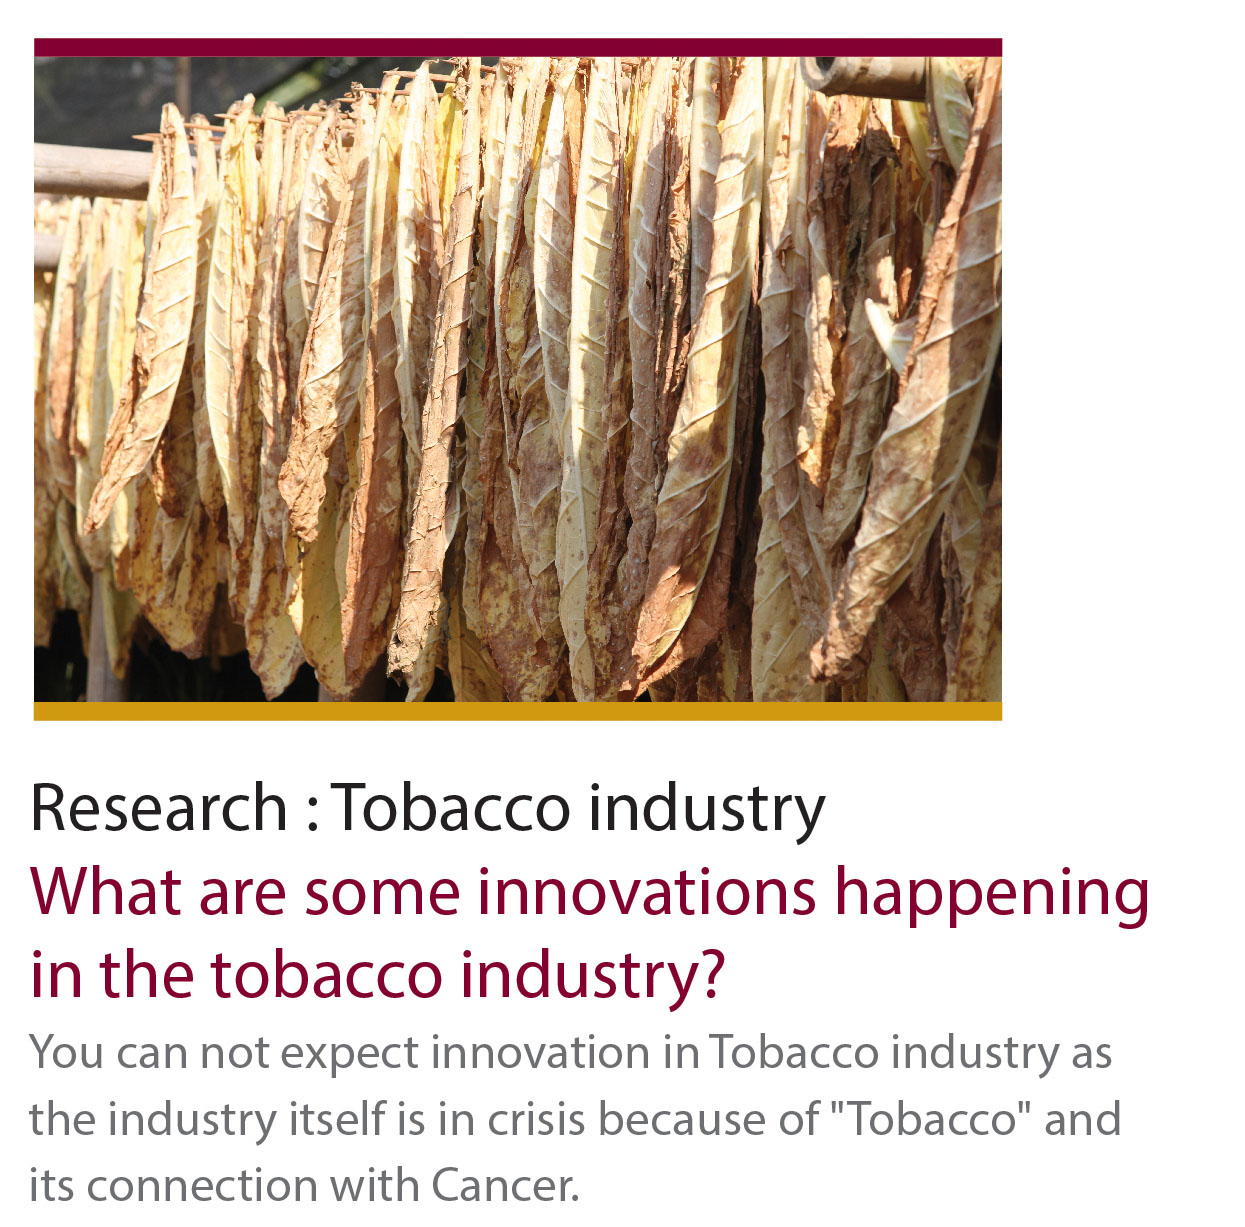 Research : Tobacco industry